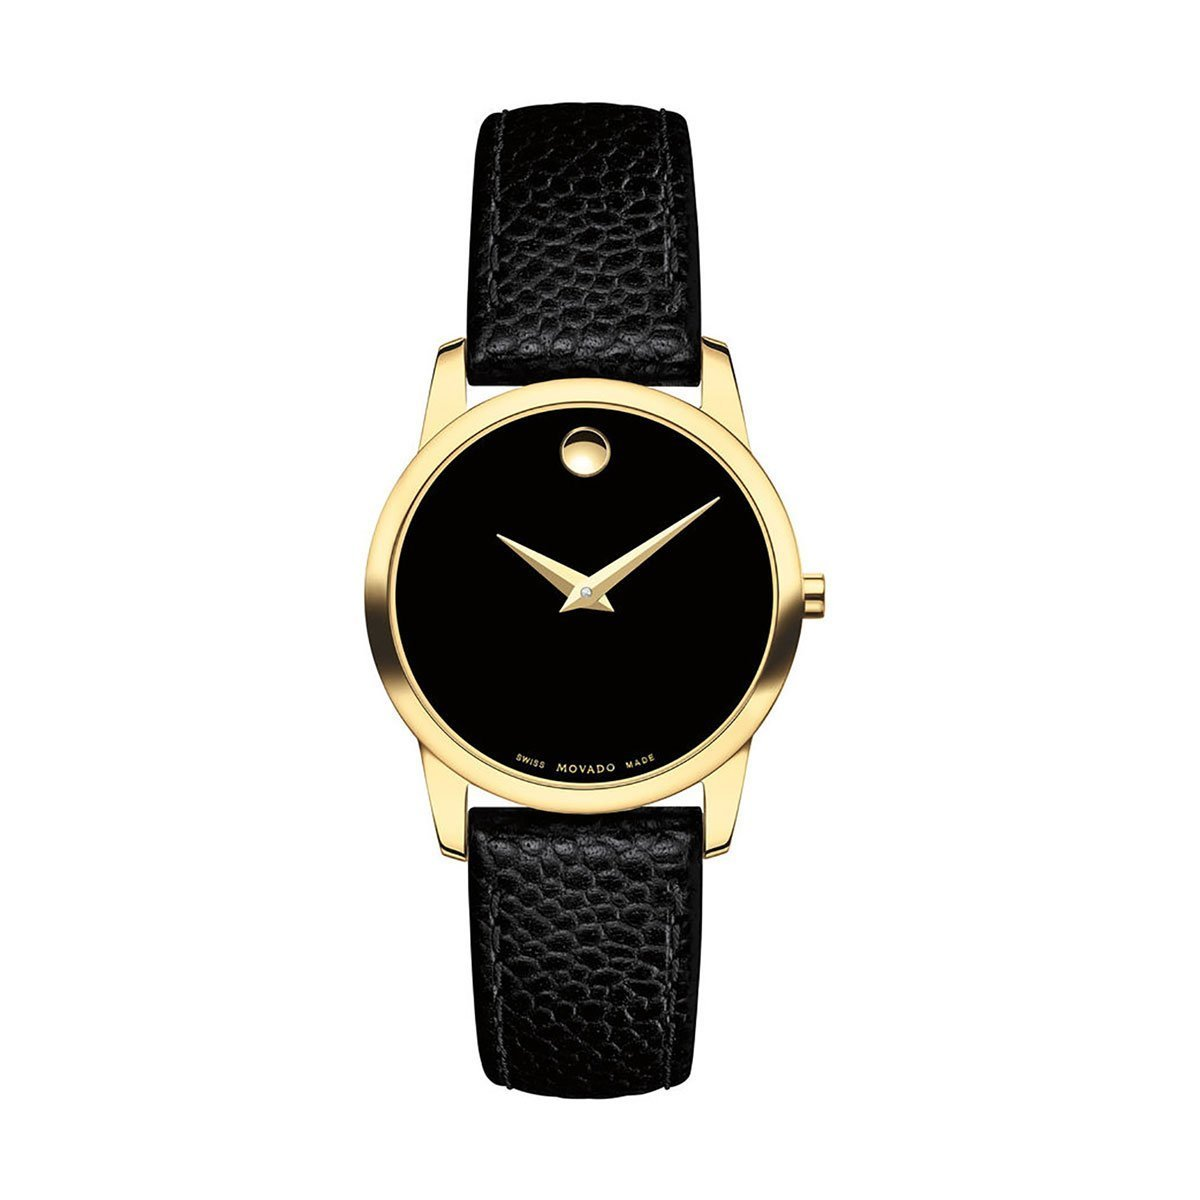 Movado Ladies Museum Classic Analog Business Quartz Watch (Imported) 0607016 by Movado